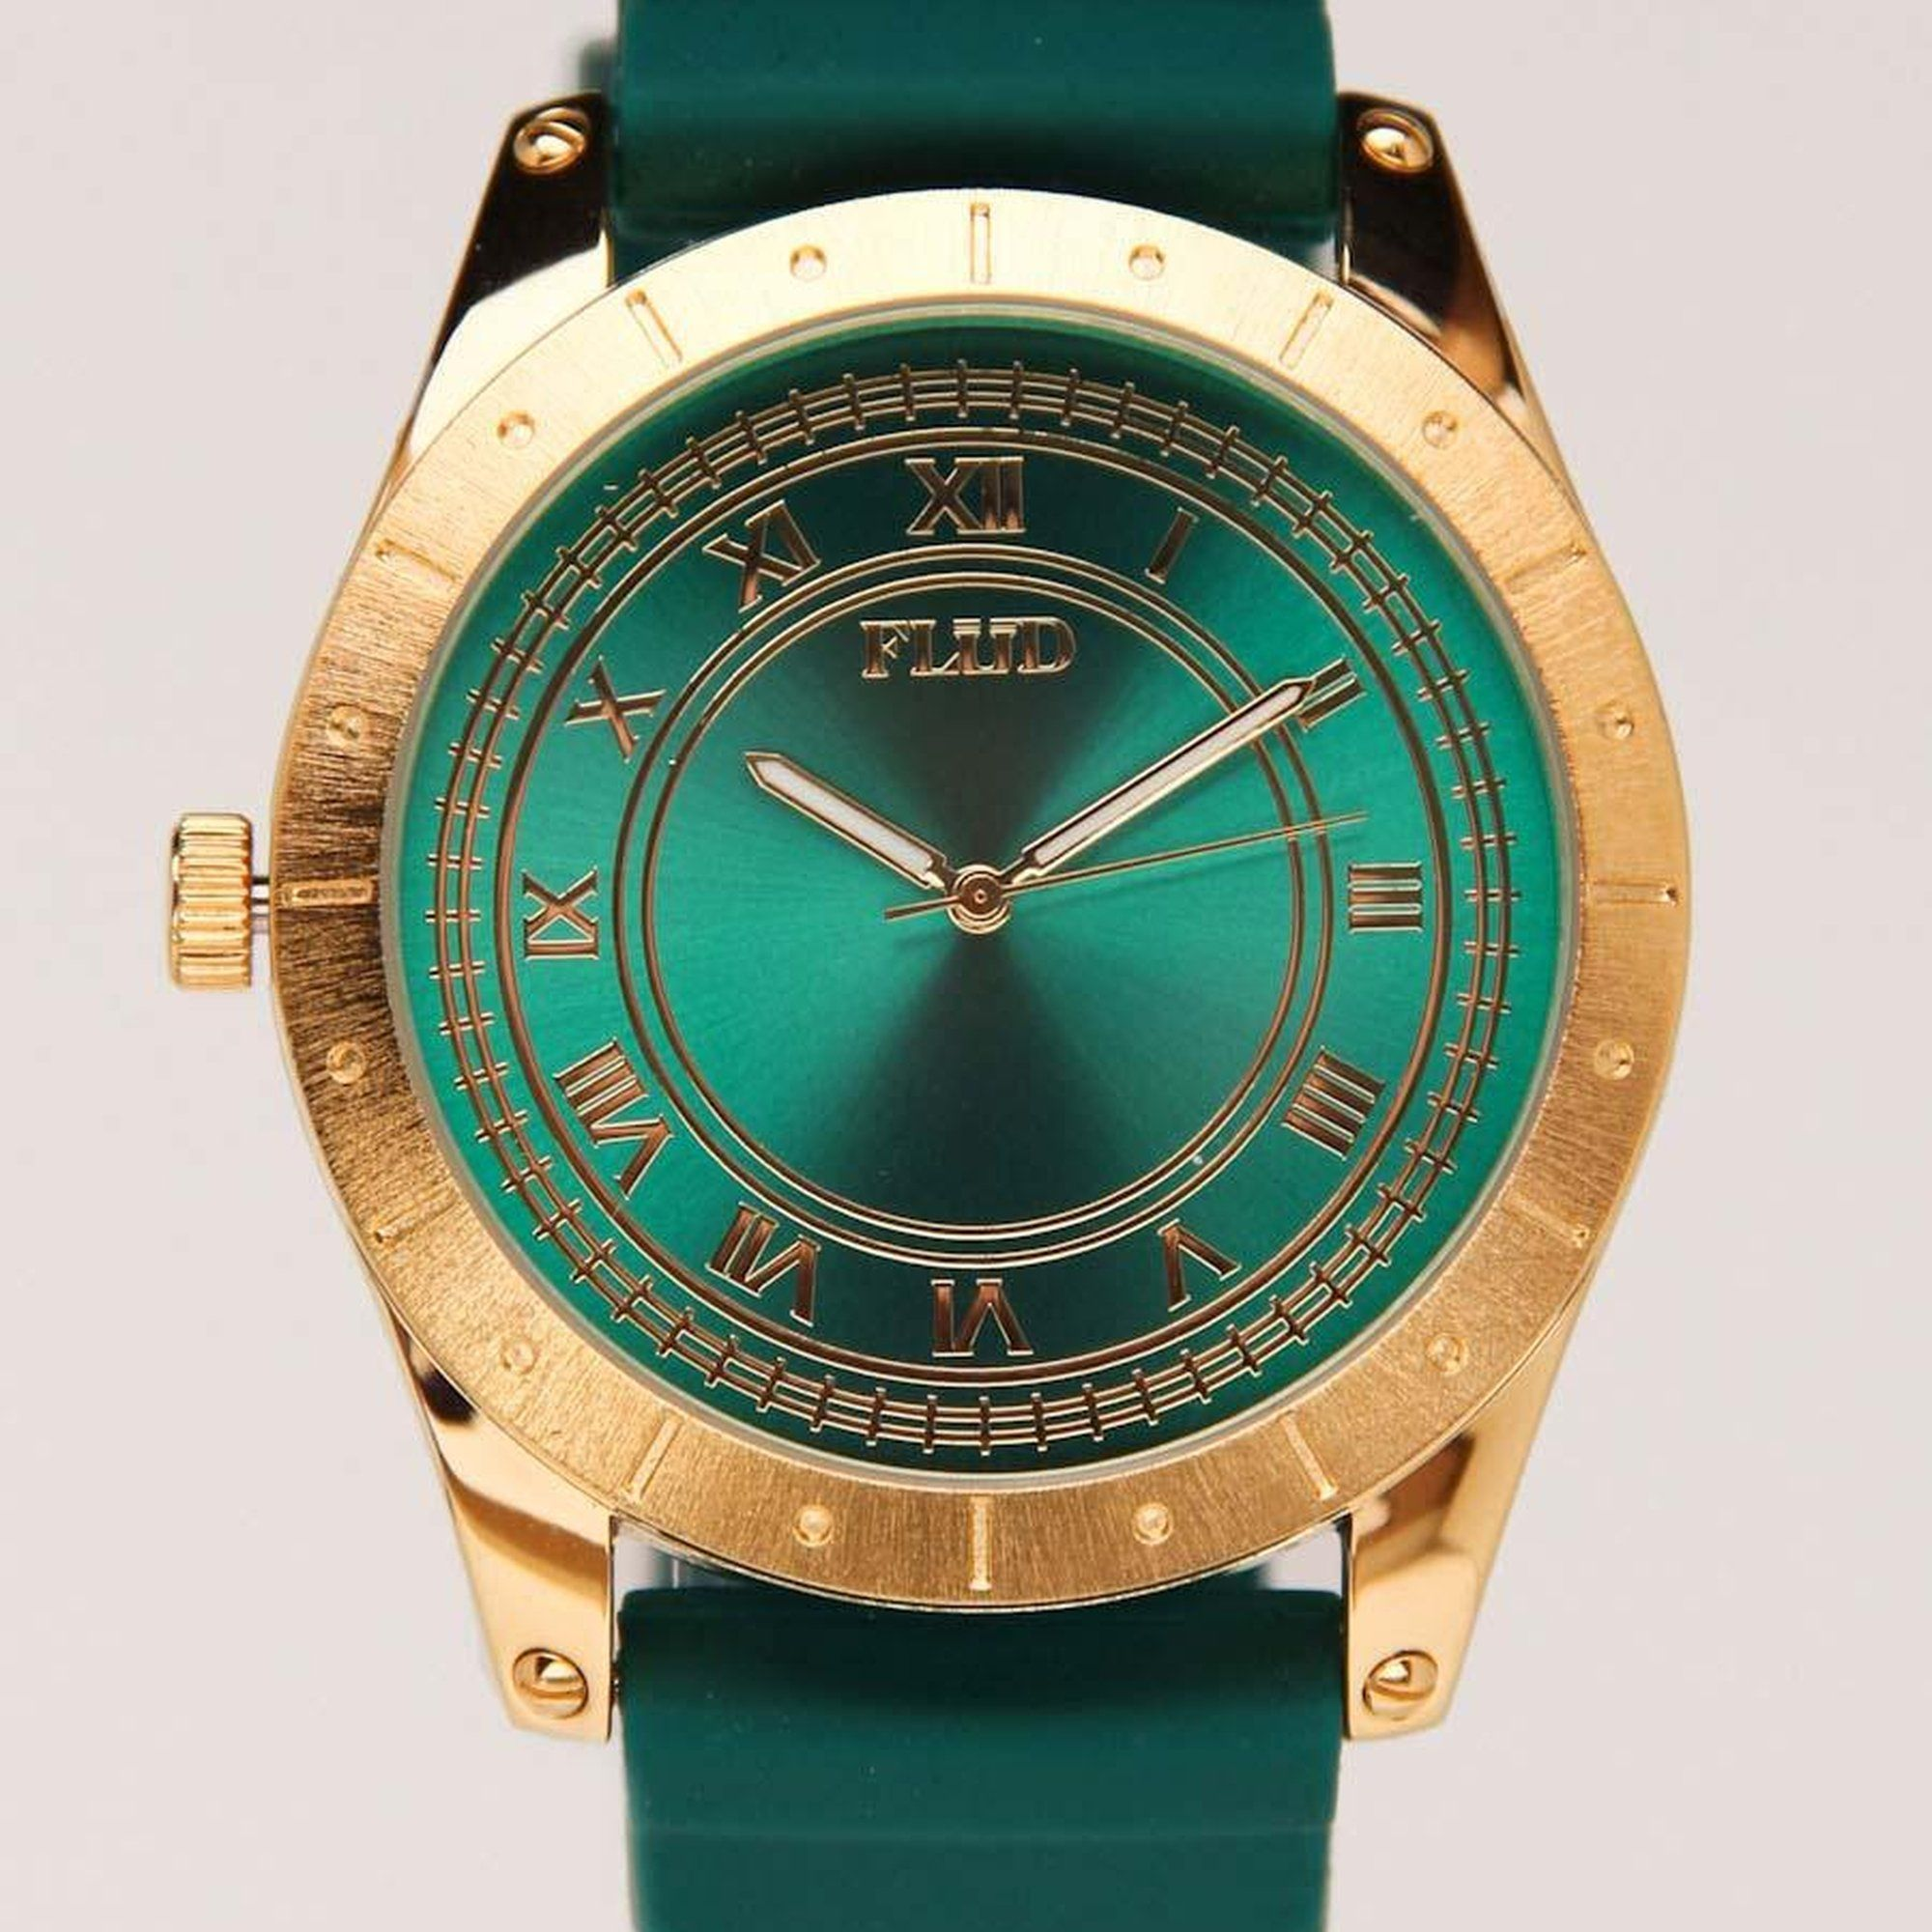 piaget diamond emerald thousand watch white watches gold vintage pave in